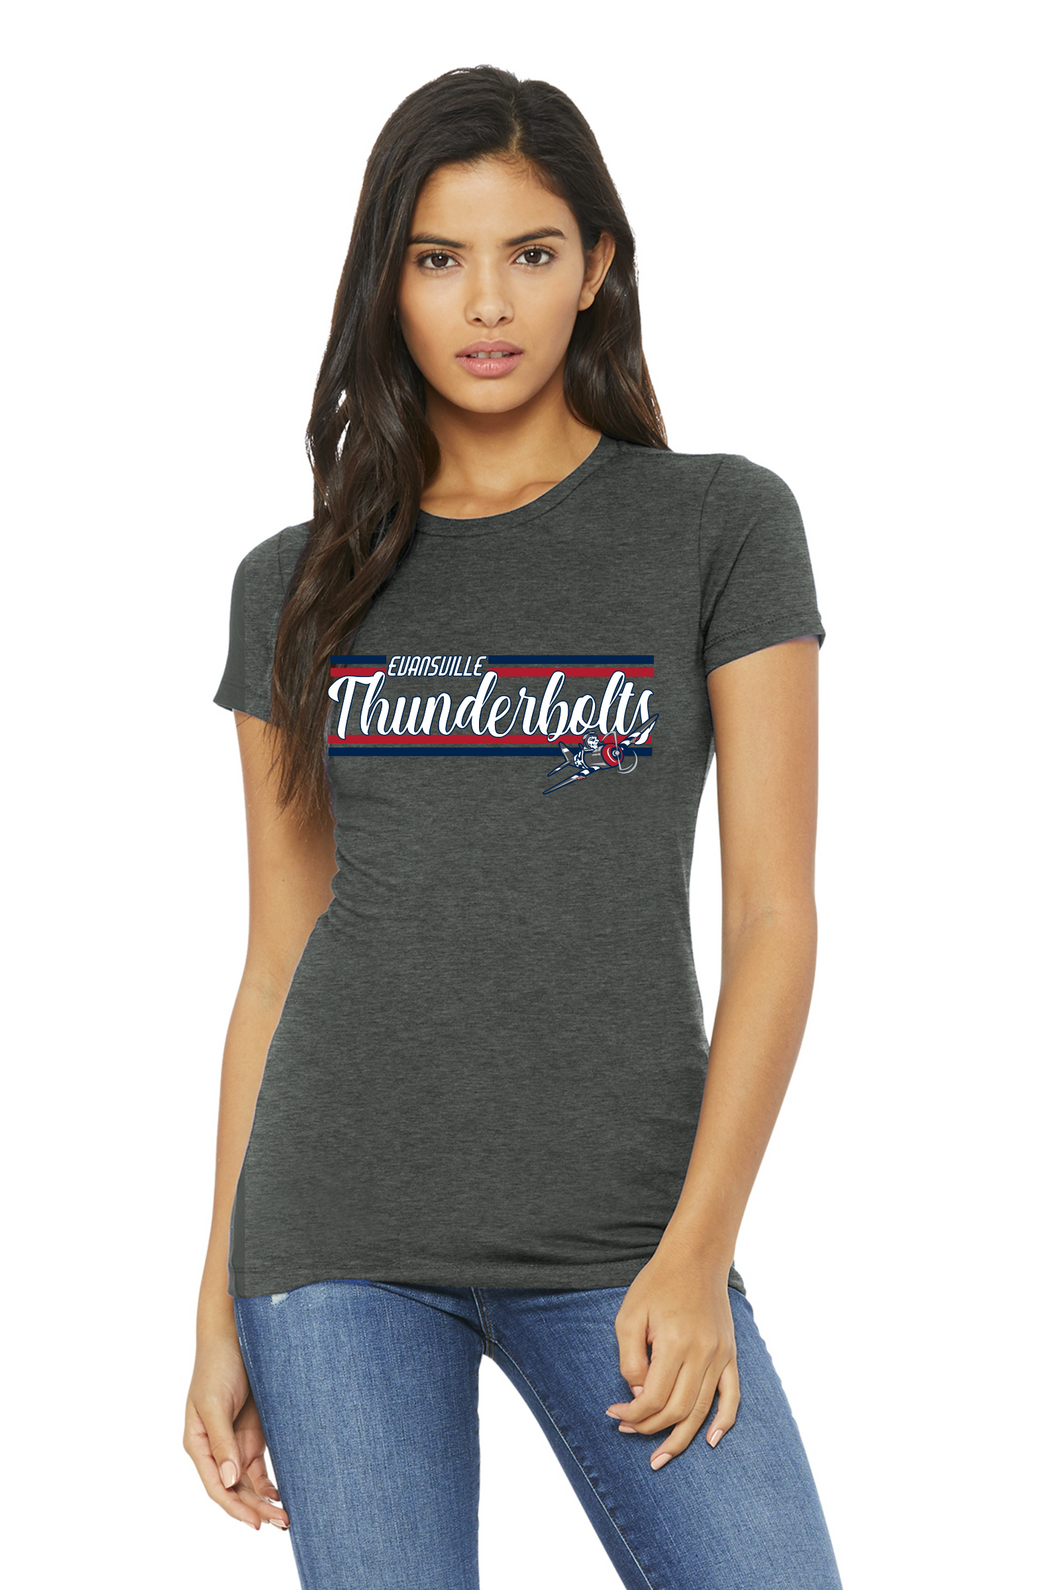 Evansville Thunderbolts- Ladies Tee